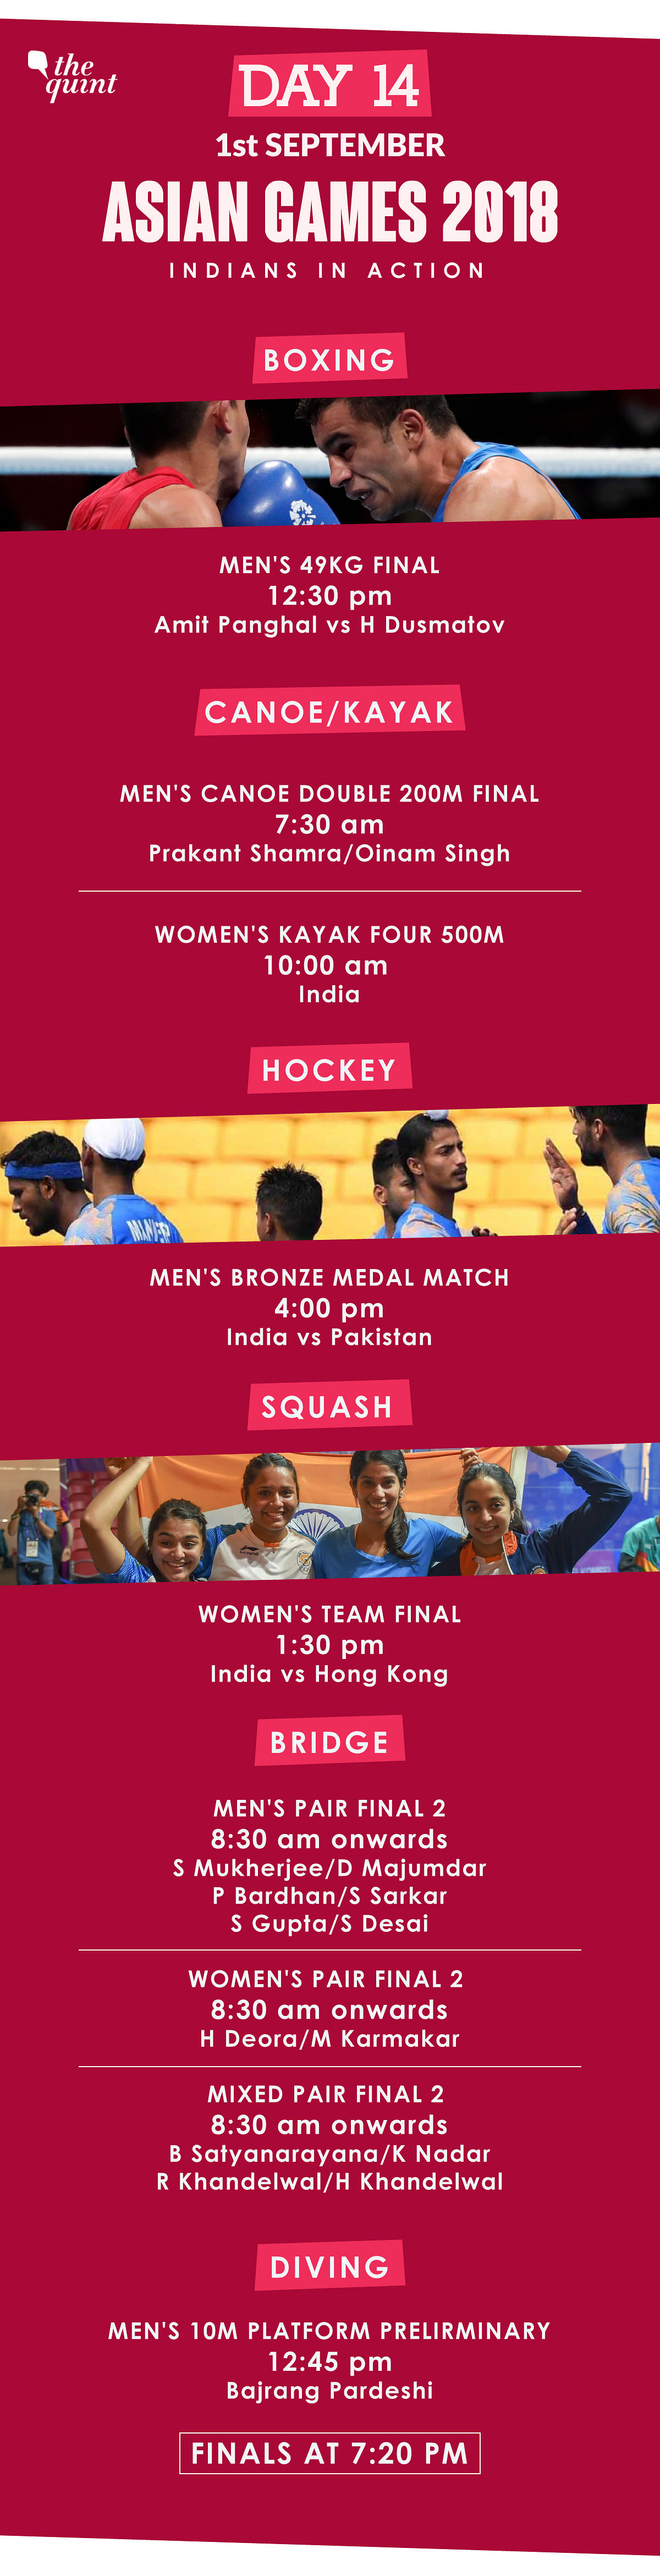 Asiad Day 14 Schedule: India vs Pak in Hockey, Boxer Amit in Final